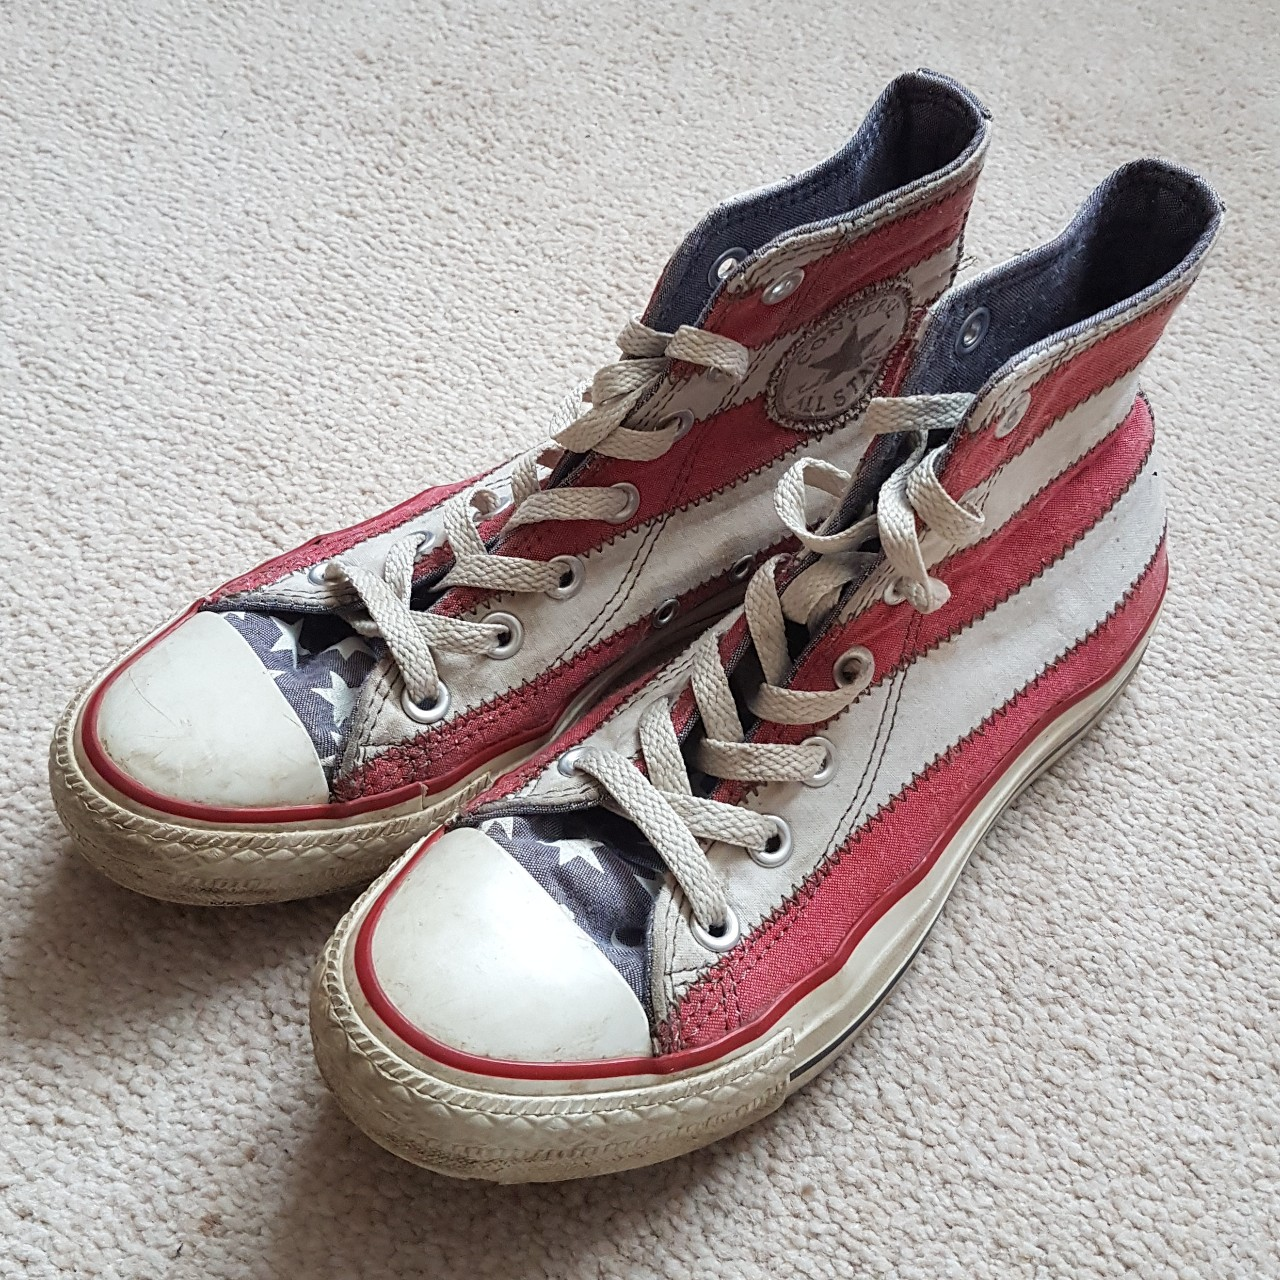 Converse Stars and Stripes Size UK 5 Wear and tear Depop